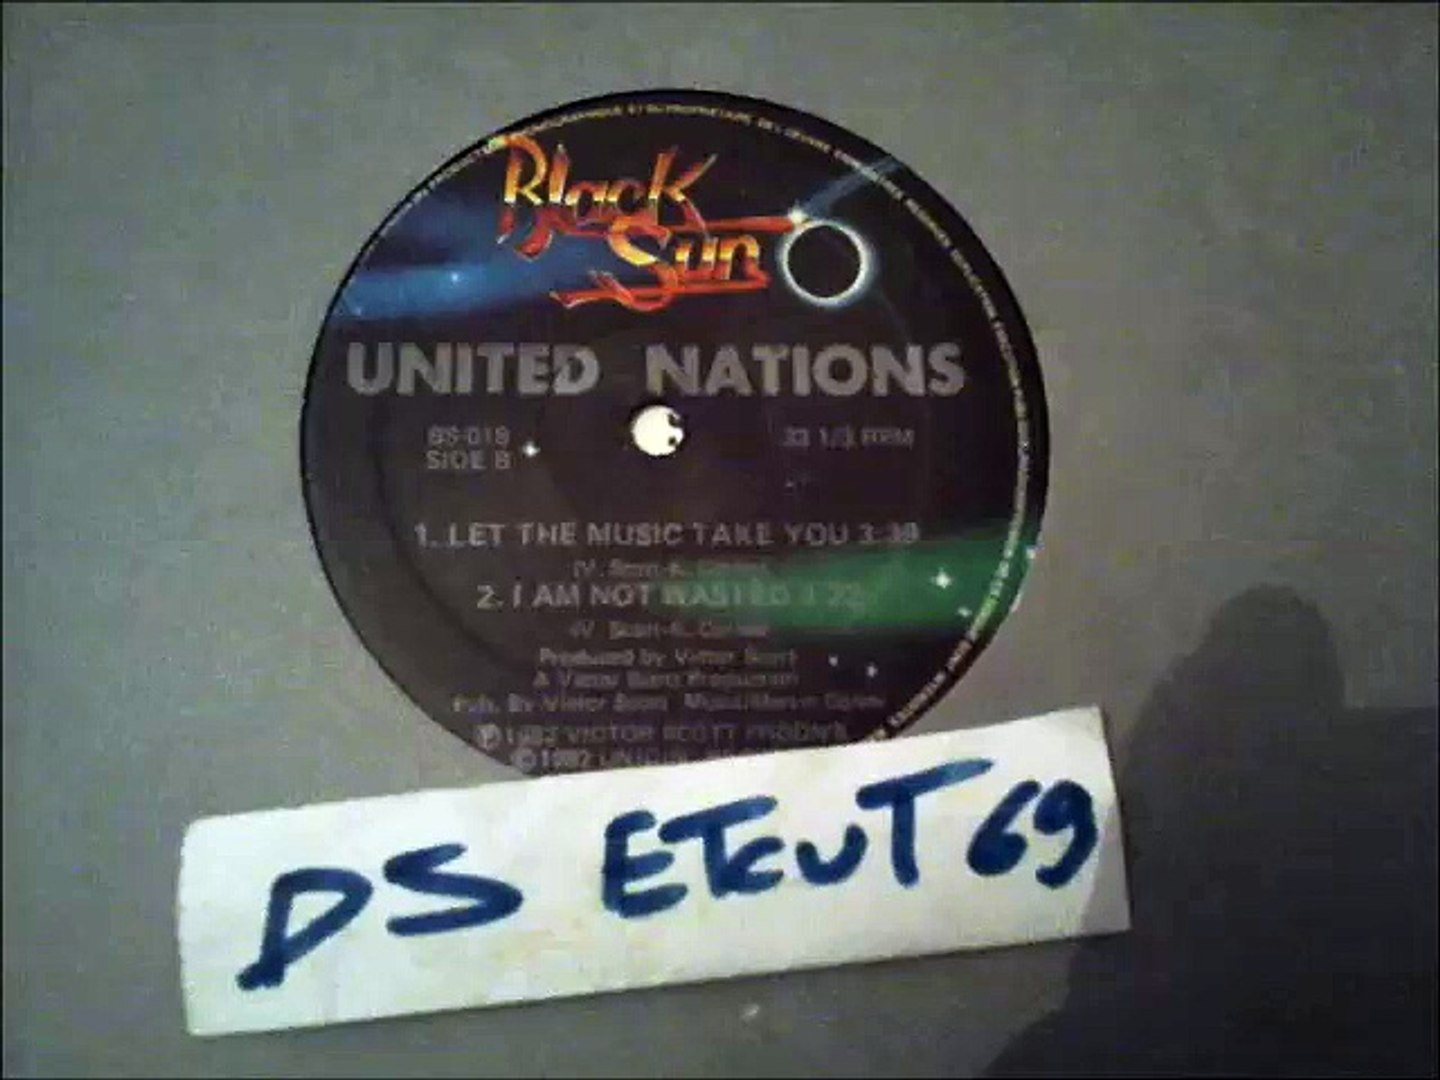 UNITED NATIONS -I AM NOT WASTED(RIP ETCUT)BLACK SUN REC 82